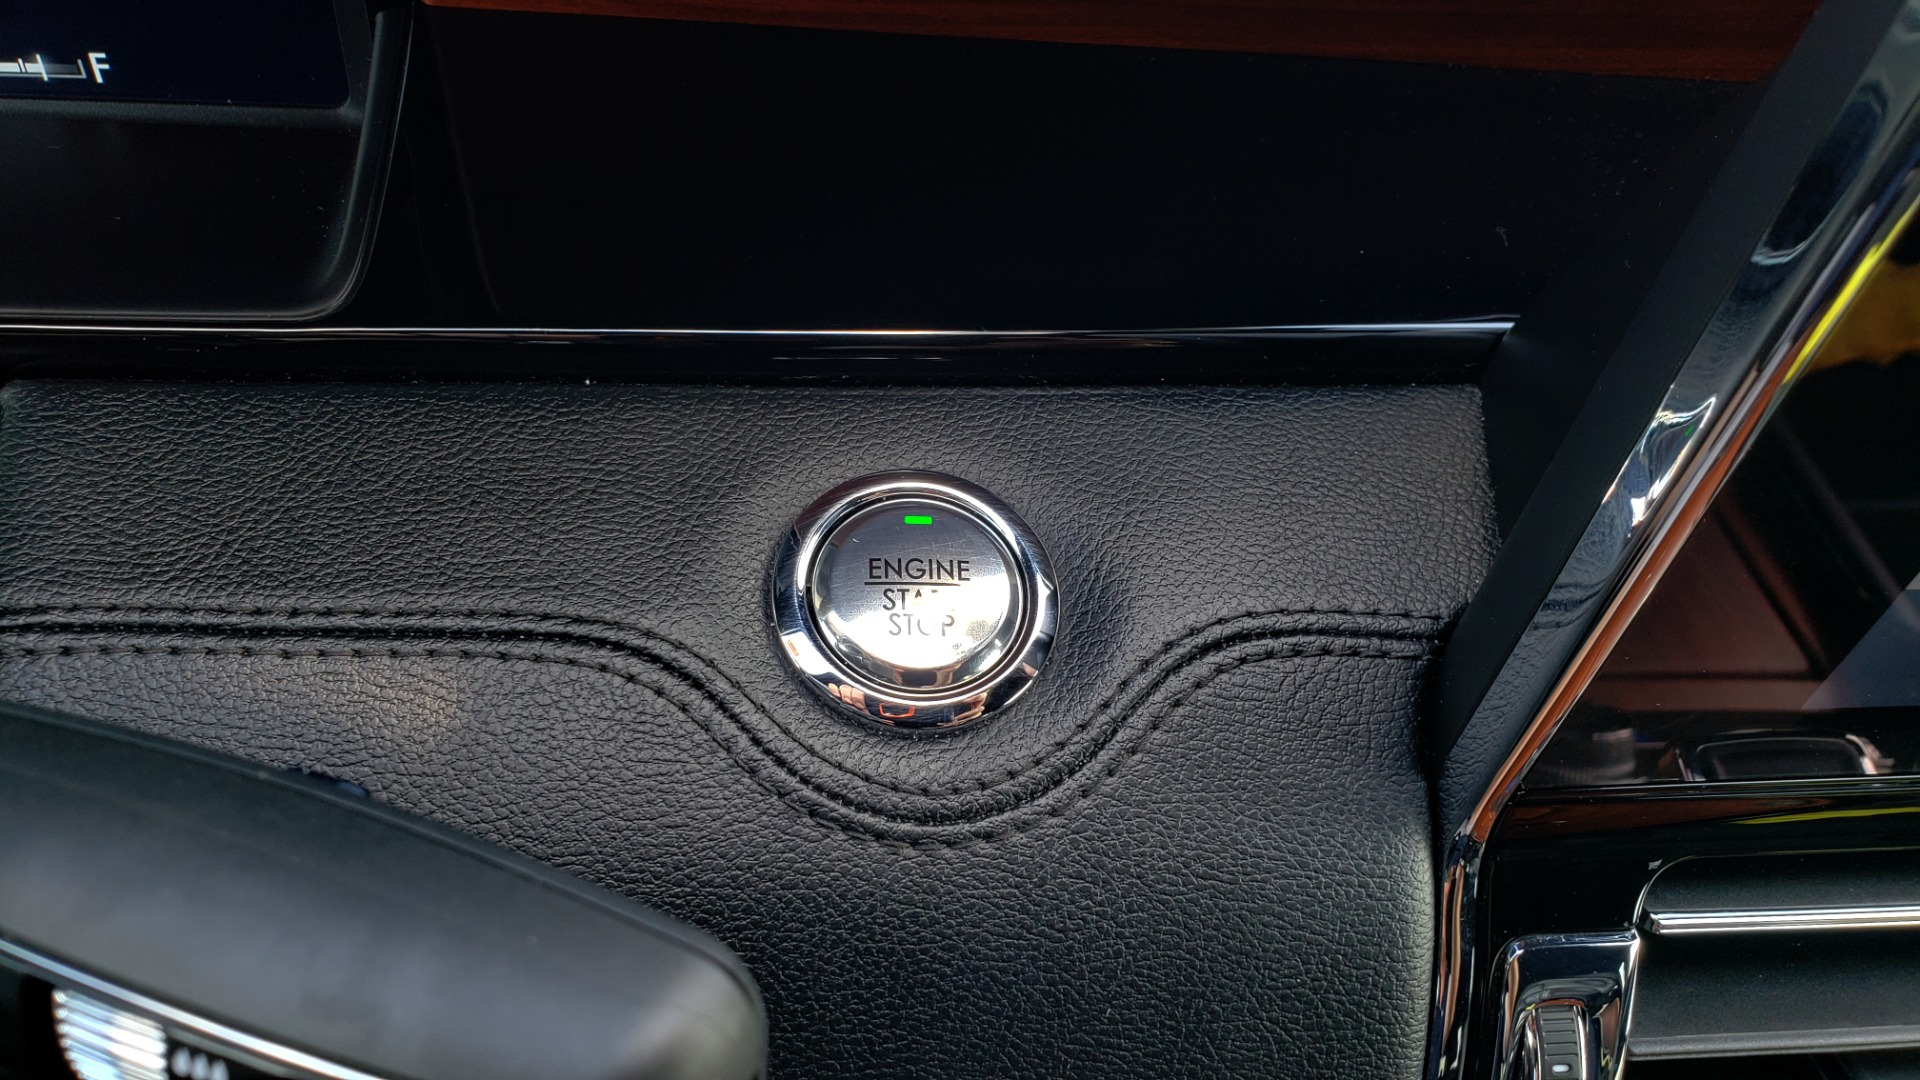 Used 2019 Lincoln NAVIGATOR RESERVE 4X4 / NAV / PANO-ROOF / REVEL ULTIMA AUDIO / 3-ROW / REARVIEW for sale $74,795 at Formula Imports in Charlotte NC 28227 51